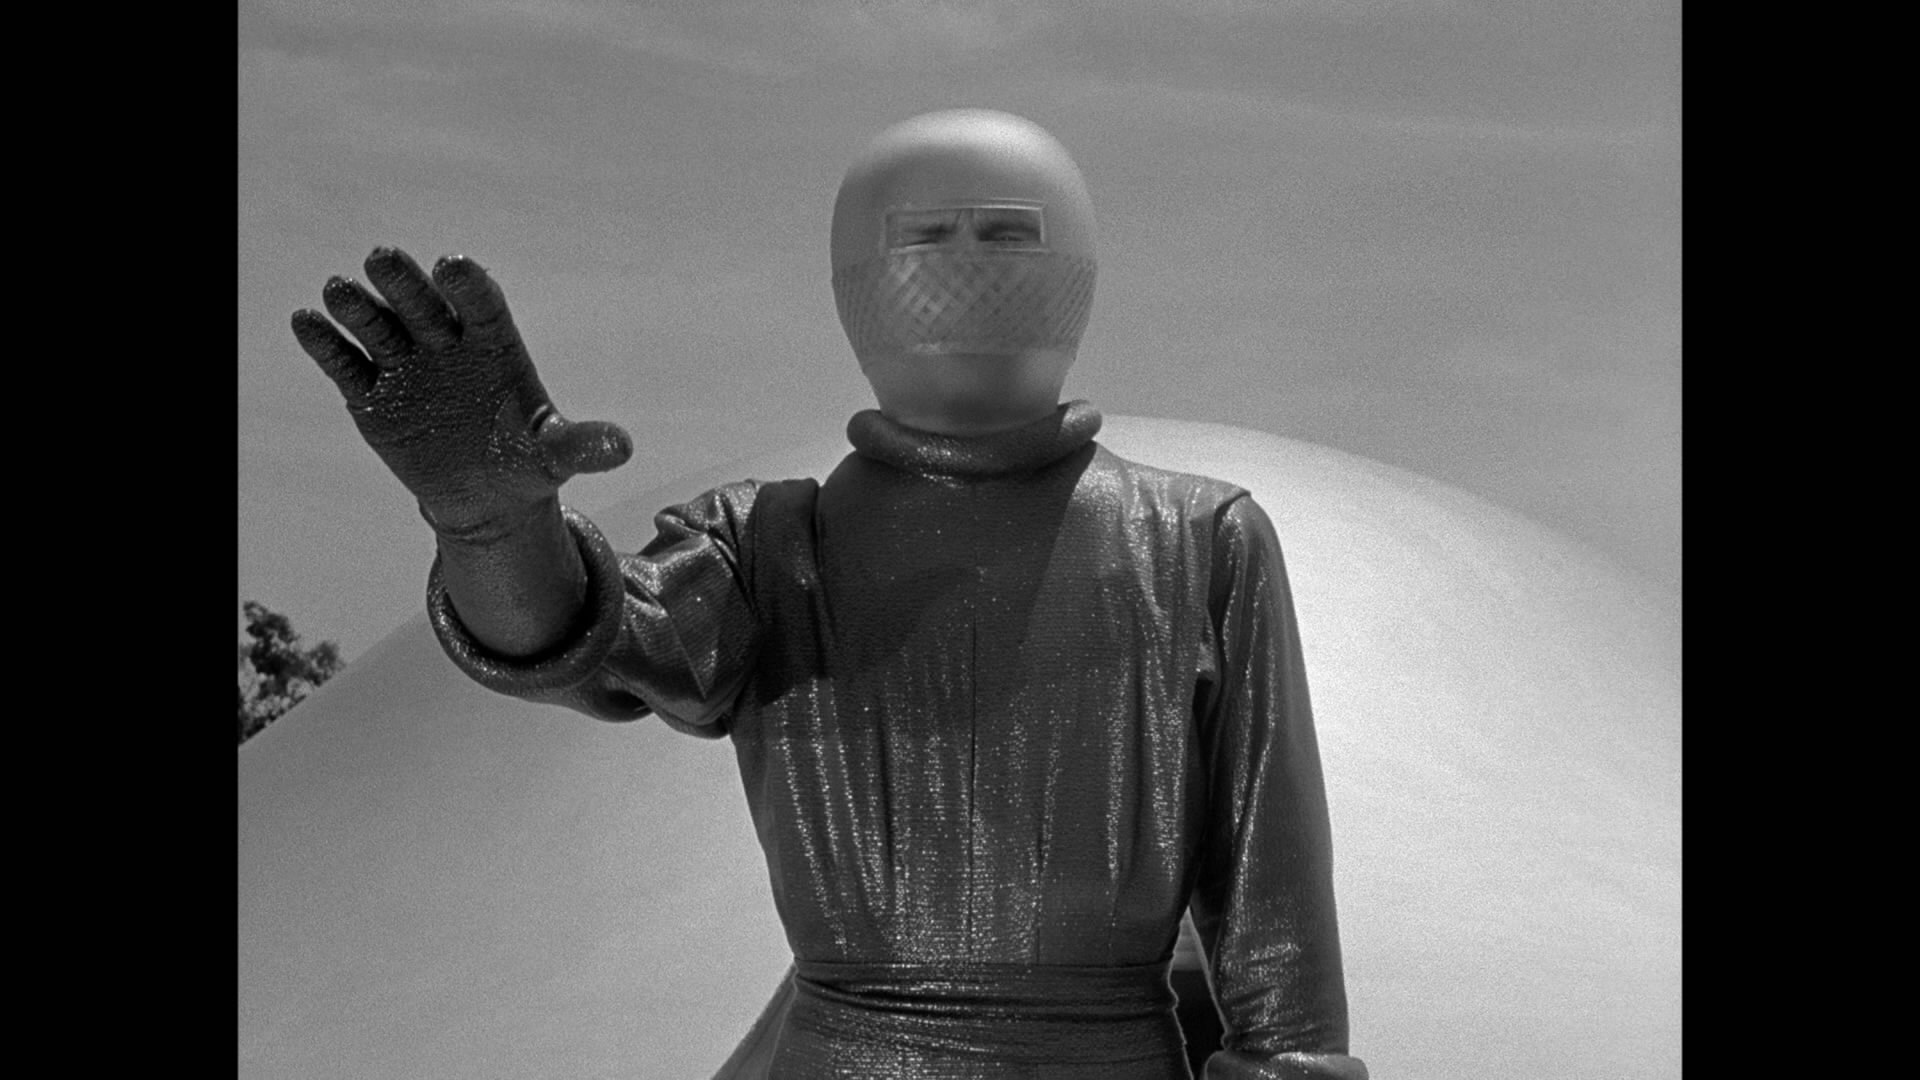 The Day the Earth Stood Still (1951) - Moria |The Day The Earth Stood Still 1951 Klaatu